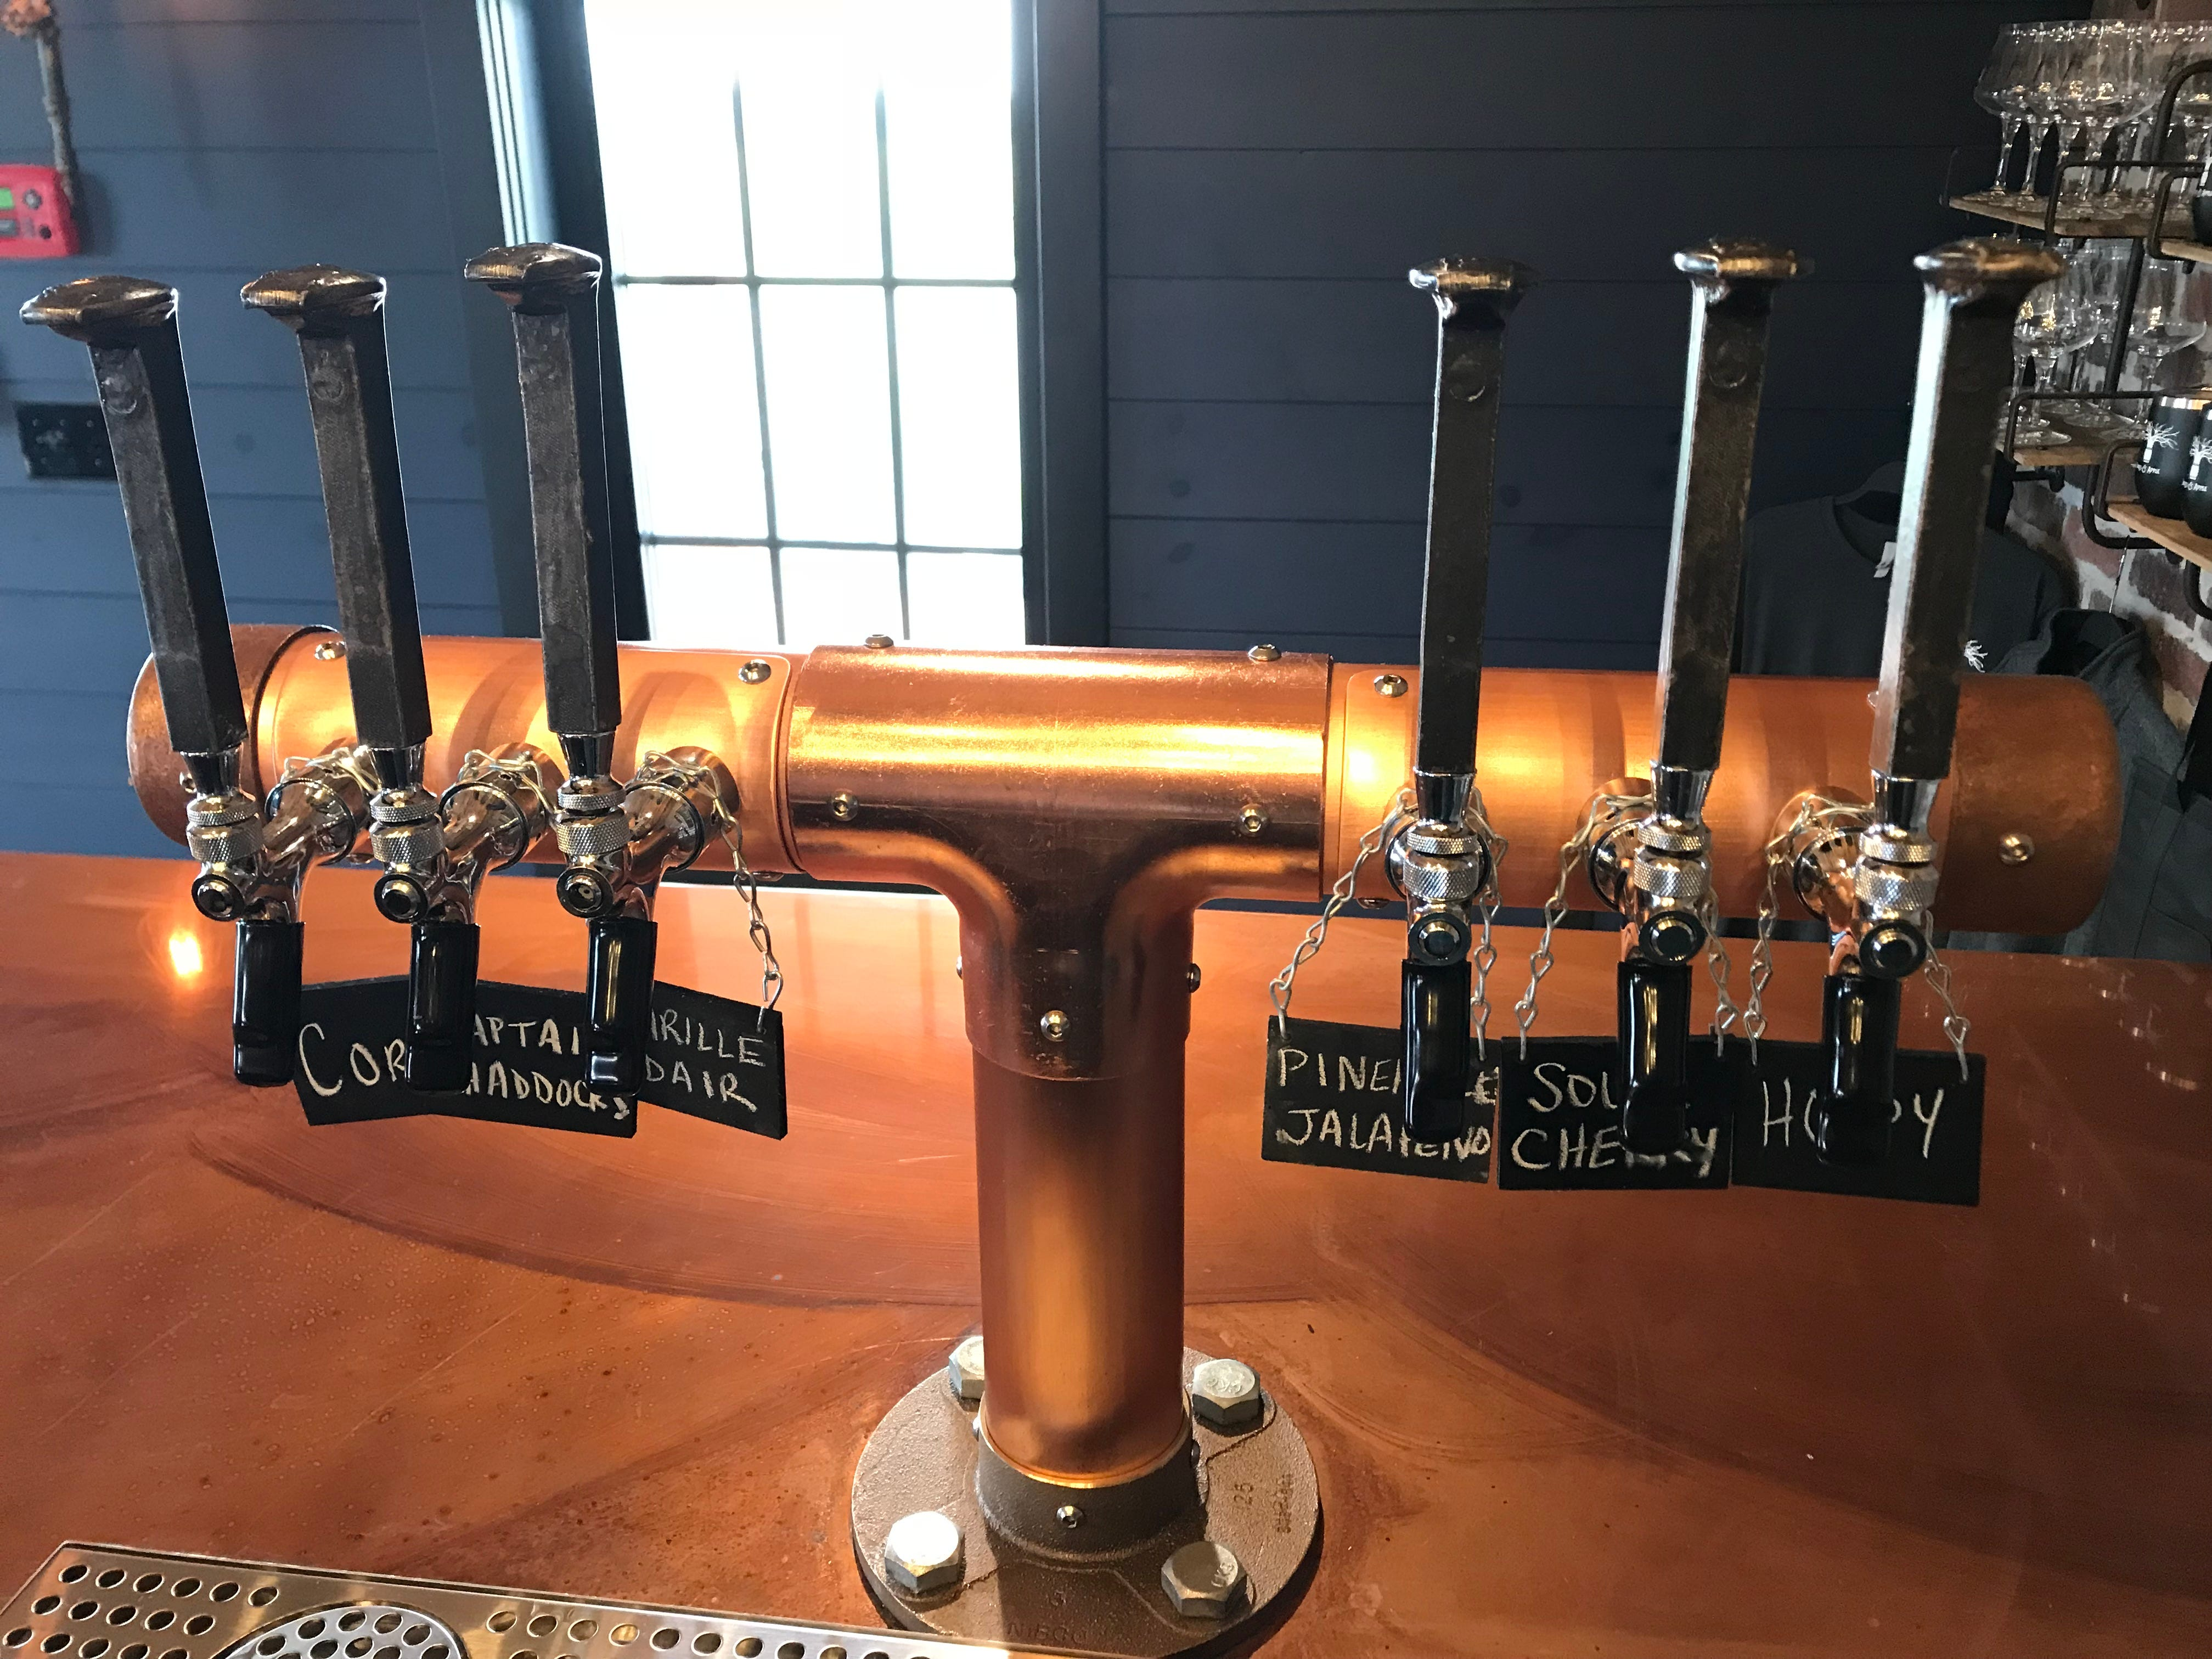 Six ciders will be poured at Oak & Apple Cidery.